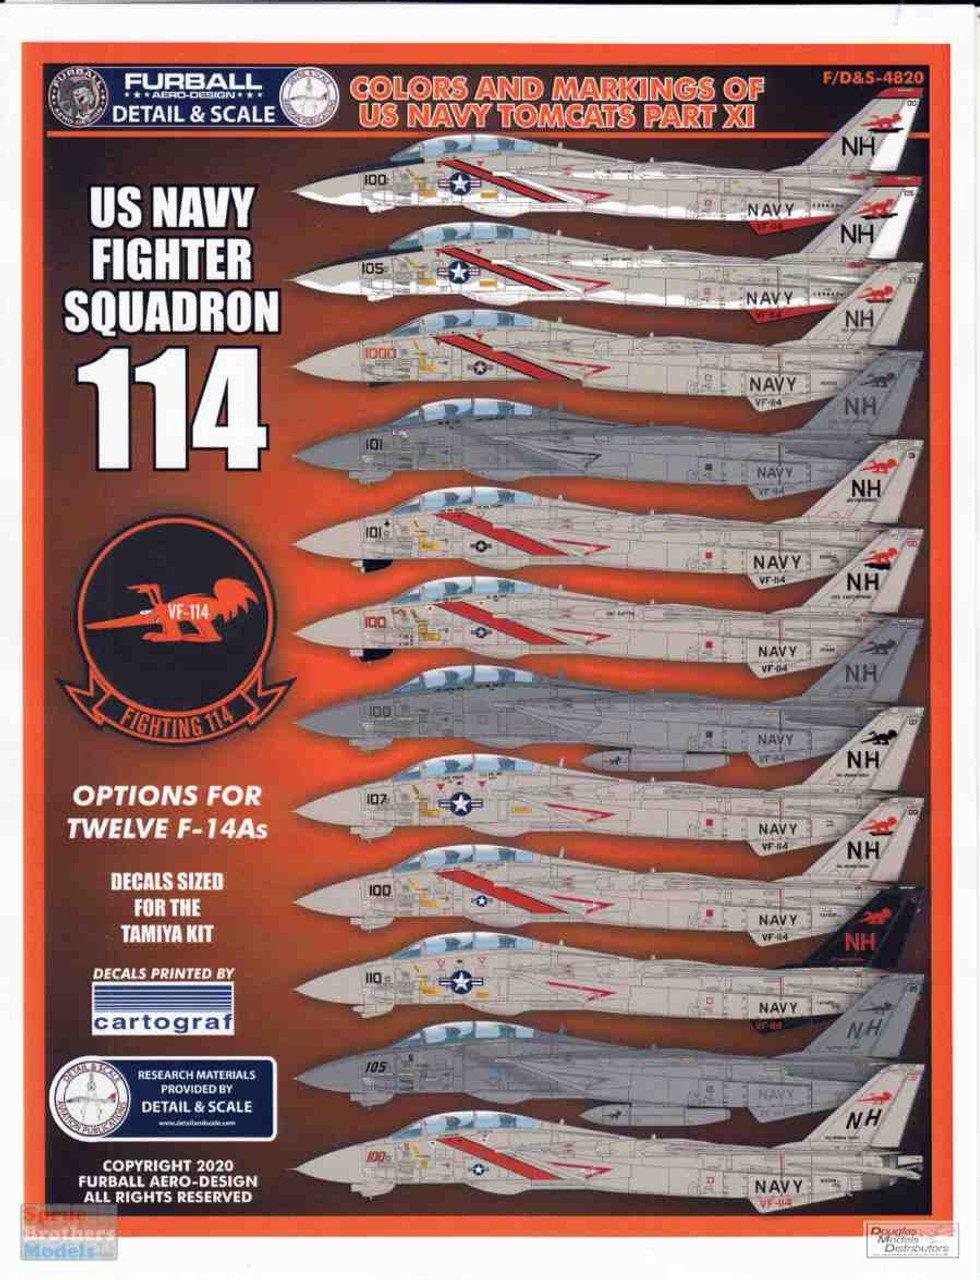 FURDS4820 1:48 Furball Aero Design F-14A Tomcat 'Colors and Markings of US Navy Tomcats' Part XI US Navy Fighter Squadron 114 VF-111 Aardvarks